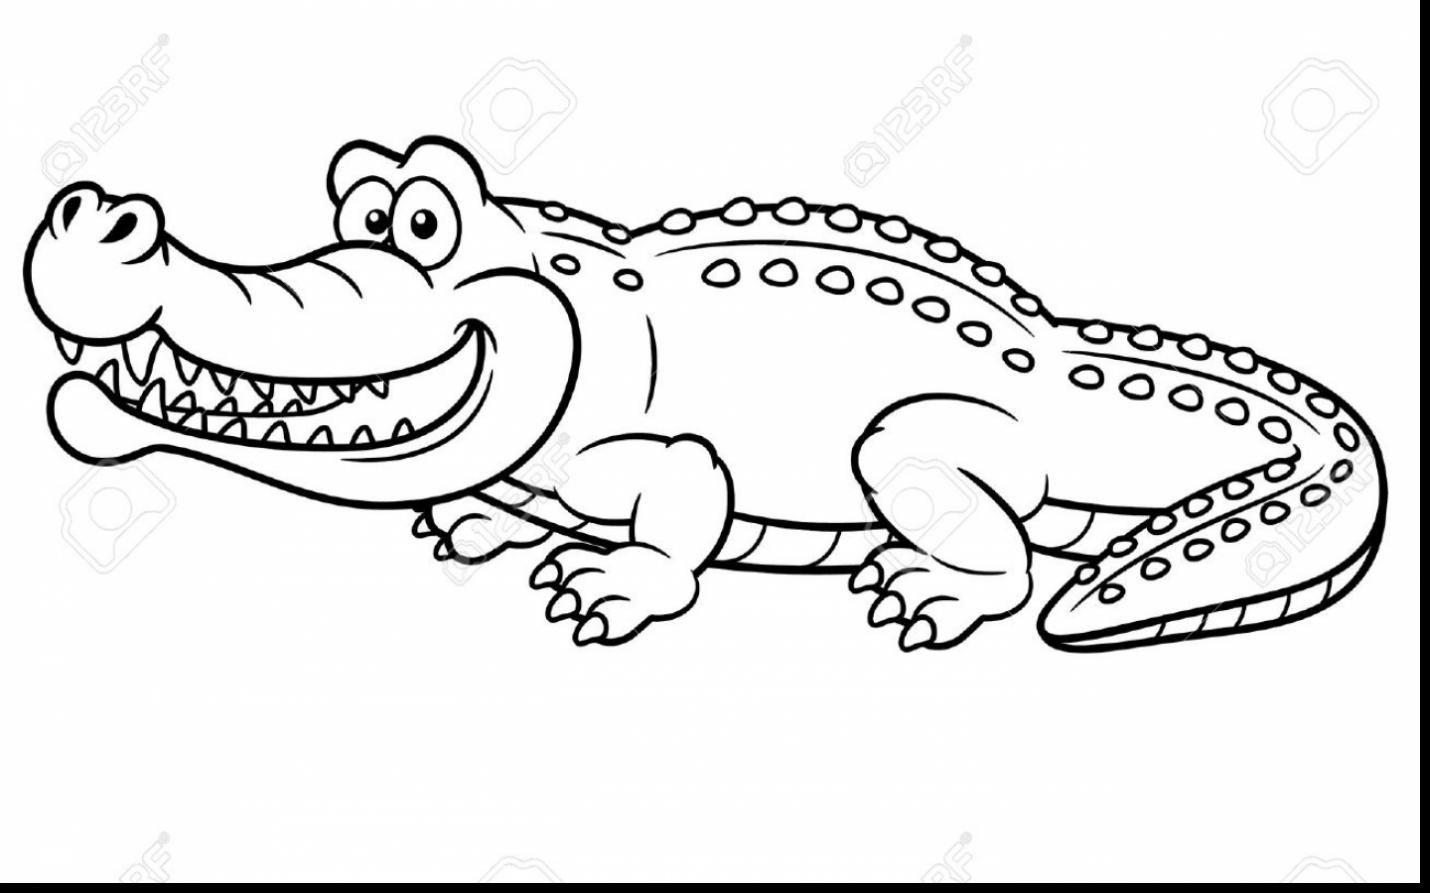 1430x893 Alligator Coloring And Drawing Printable For Snazzy Print Sheet To